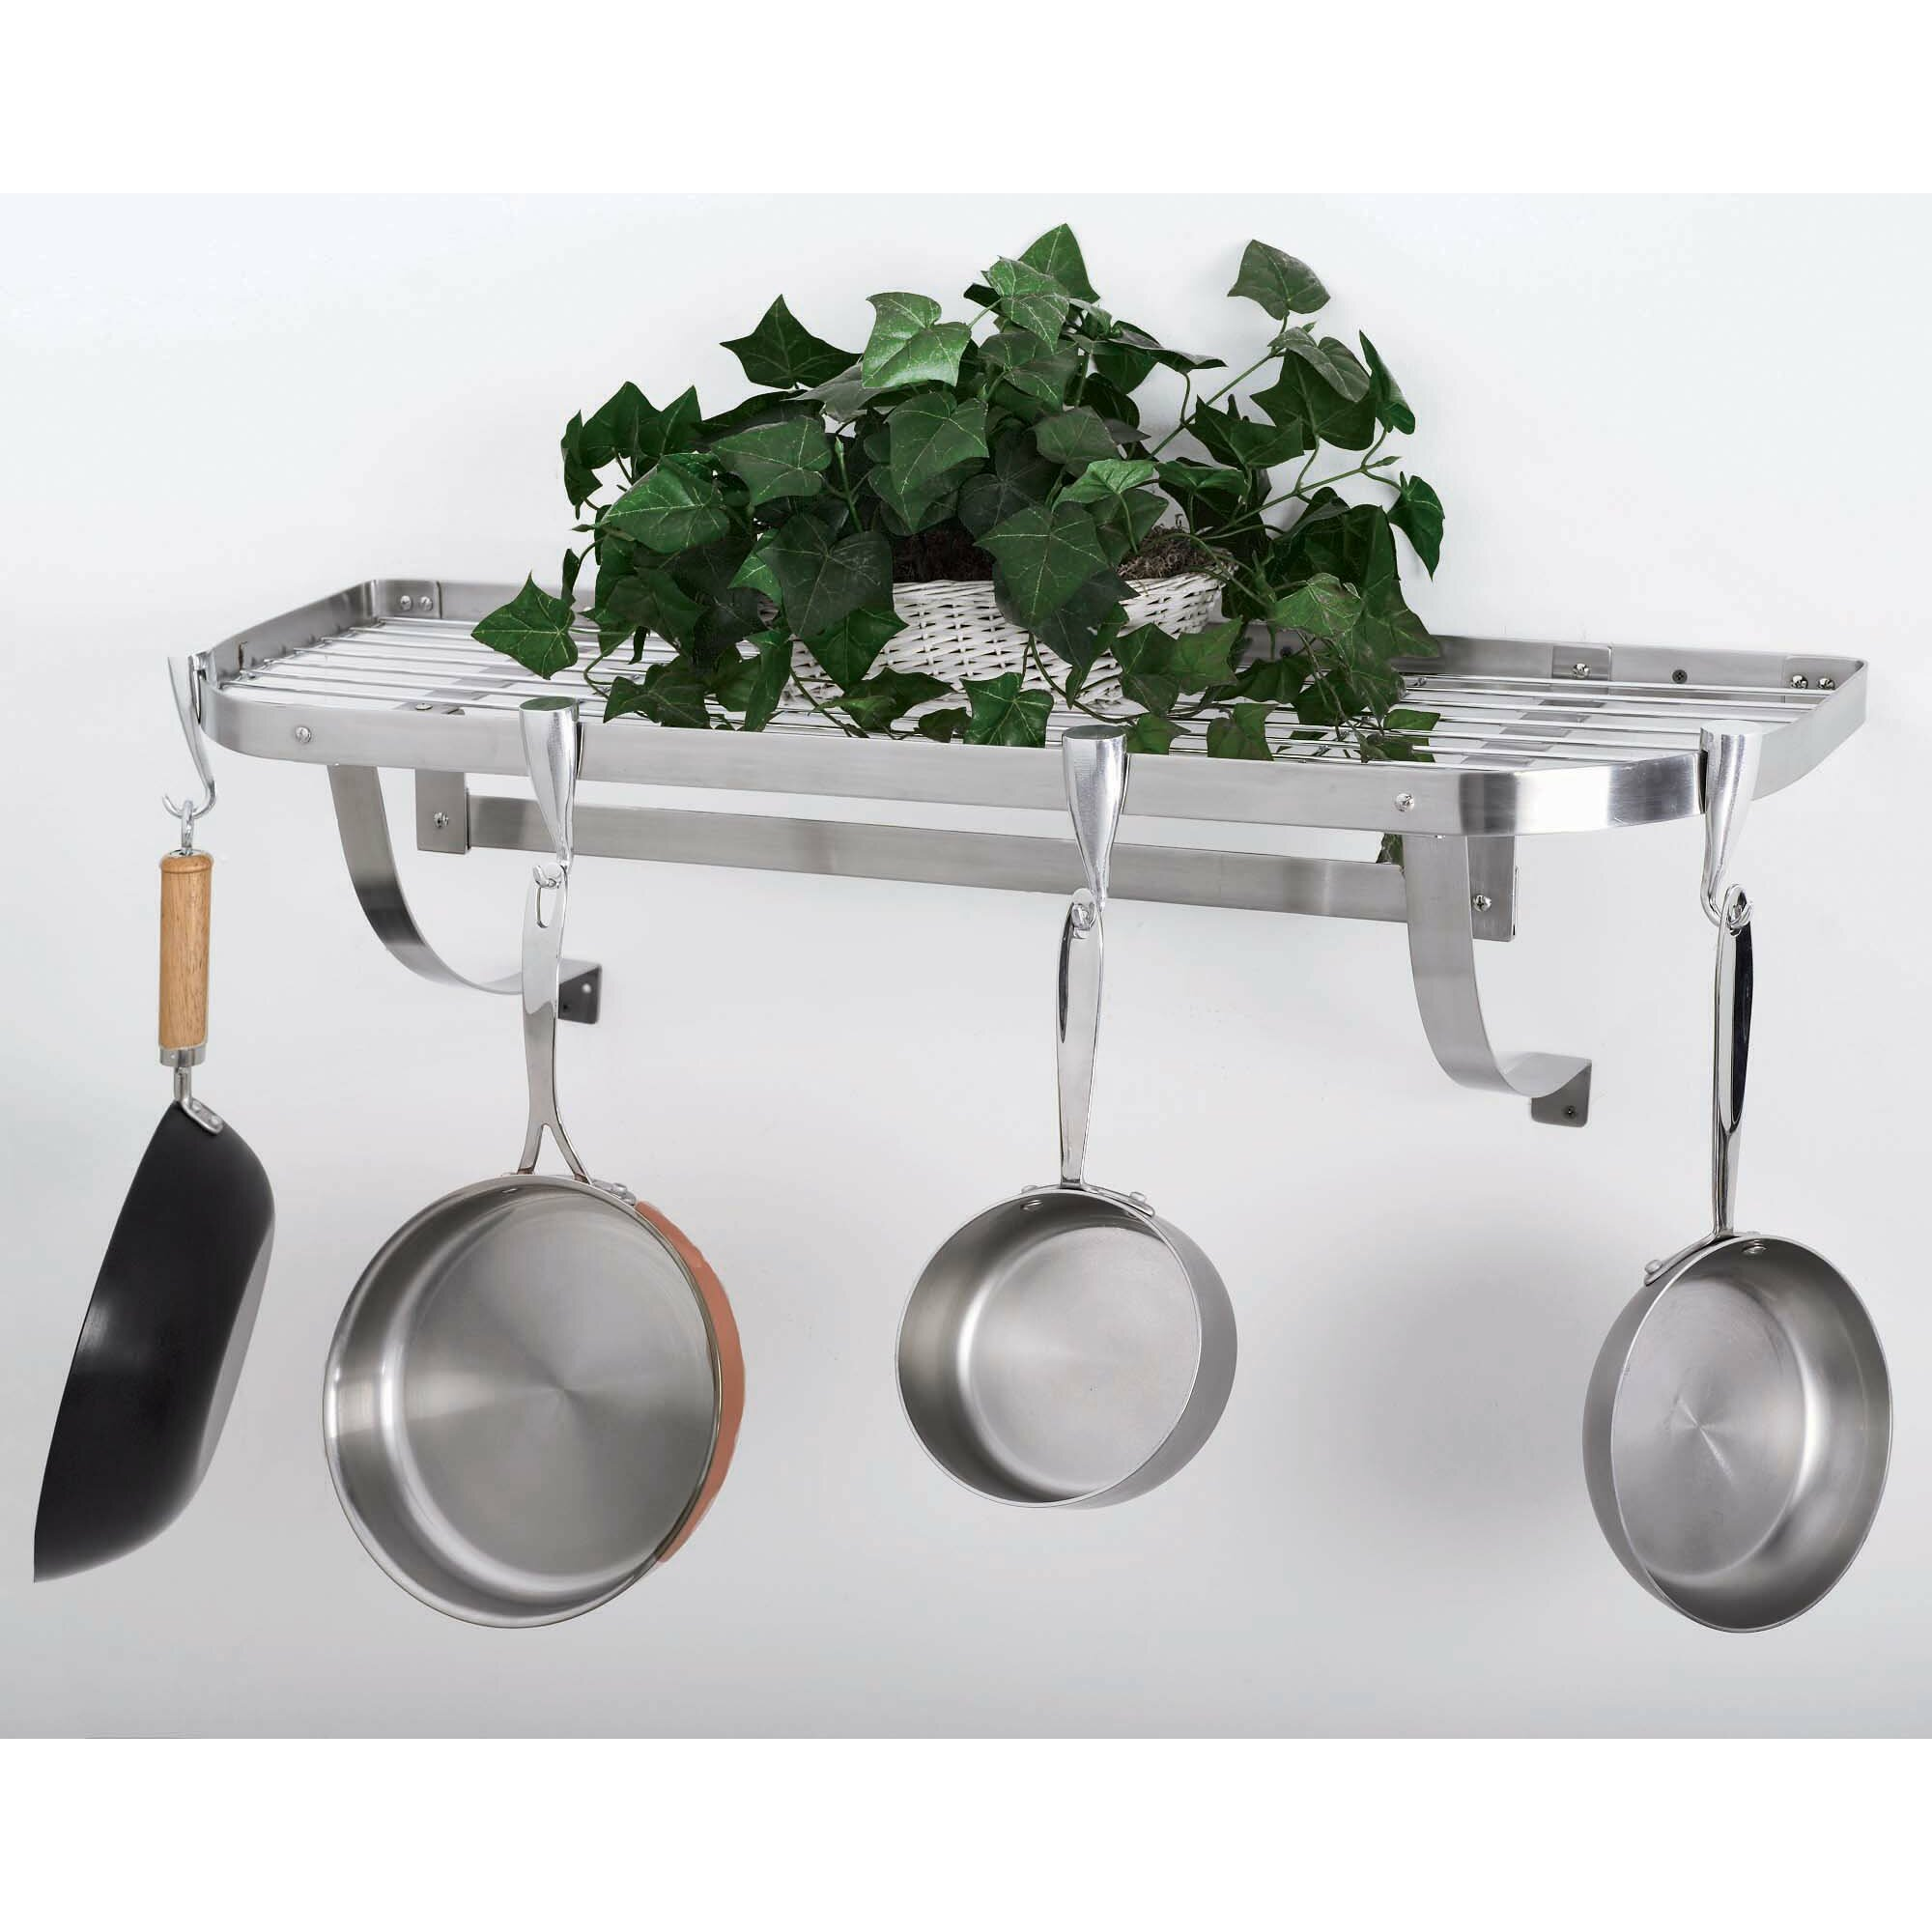 Concept Housewares Stainless Steel Wall Mounted Pot Rack